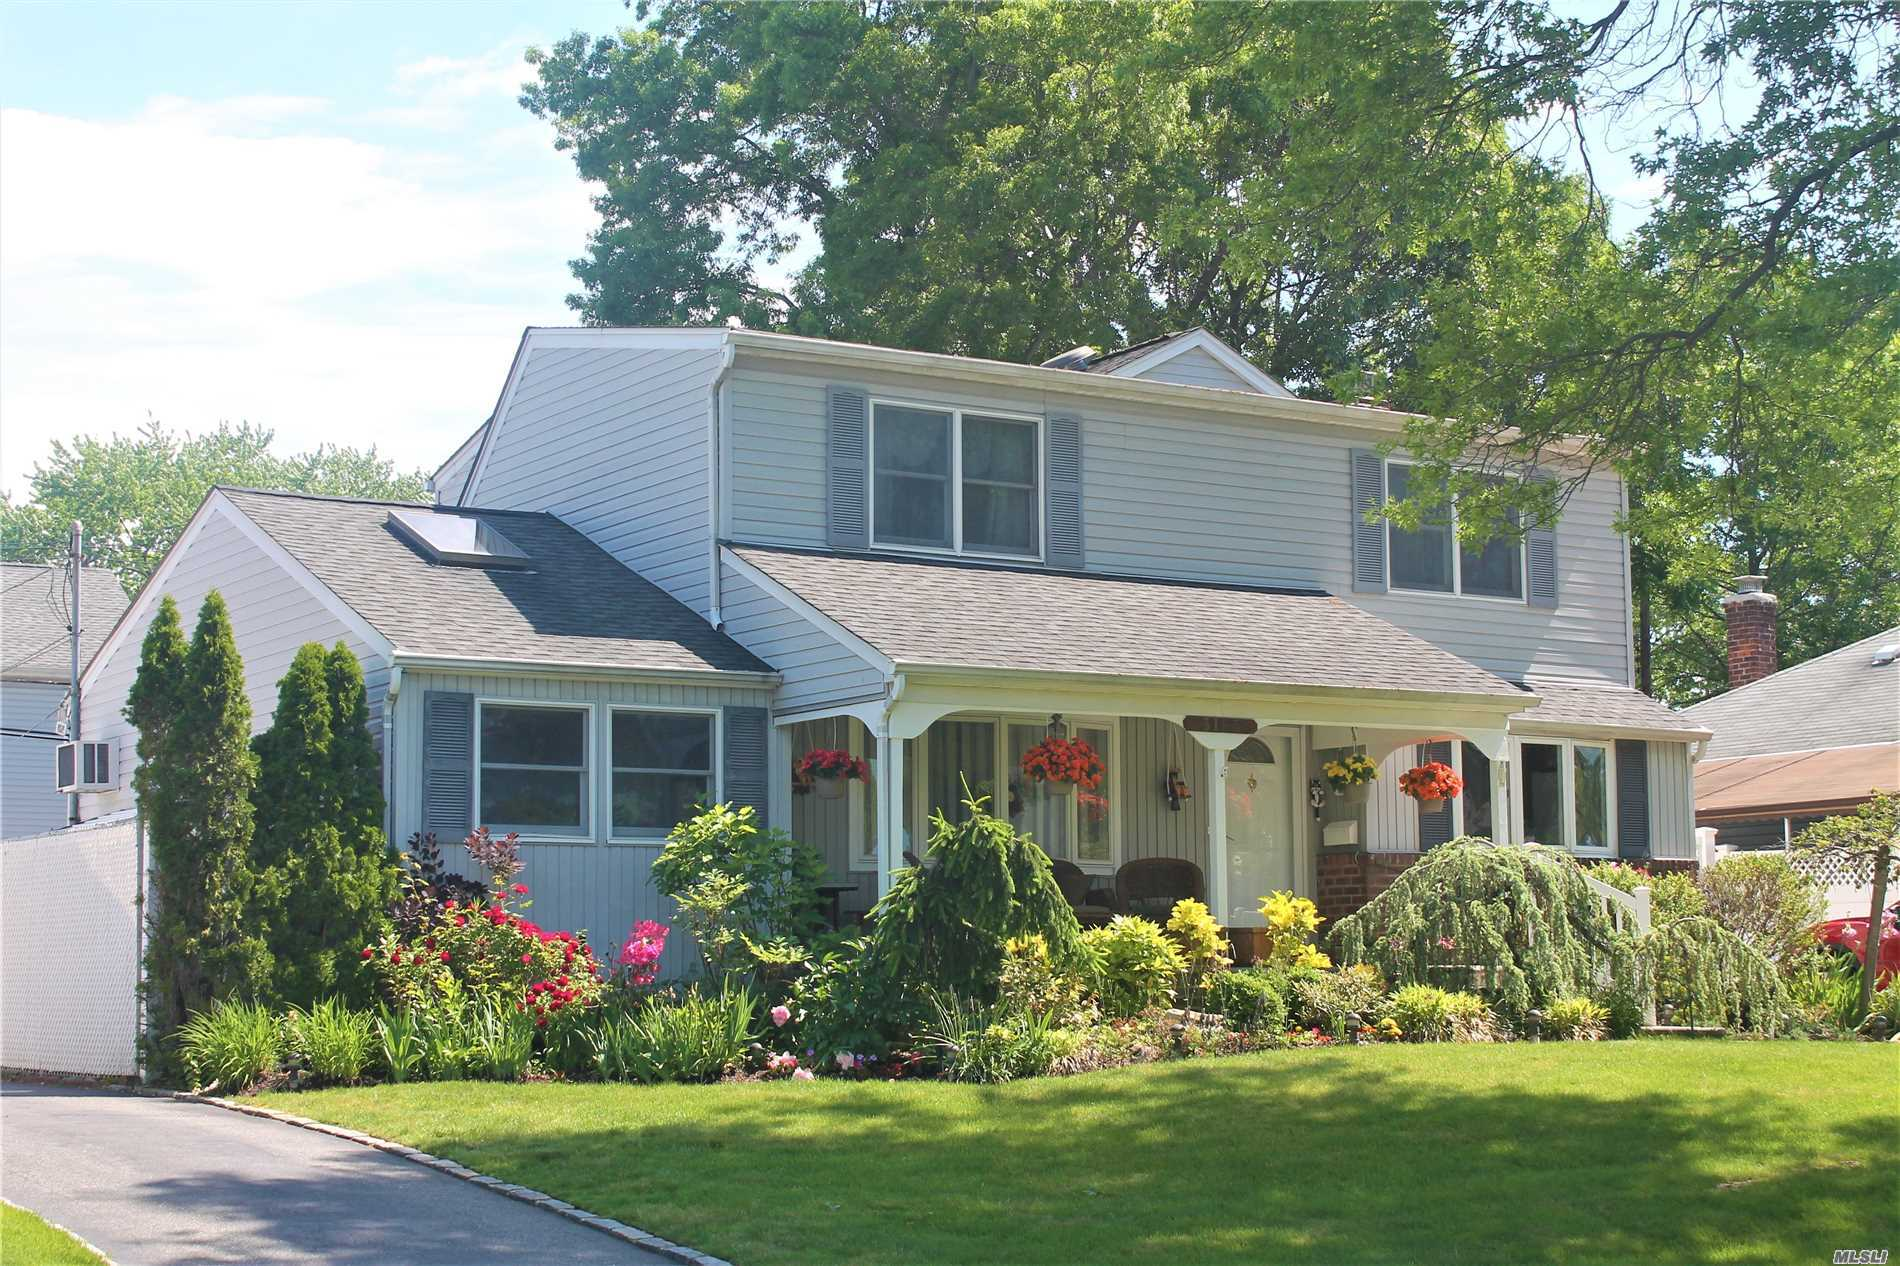 **Just Reduced** Start With An Inviting Front Deck Nestled In A Well Manicured Property To Lead You In To This Large Updated Home Boasting Space Galore. Inside You Will Find A Granite Topped Kitchen, Large Master Suite With Enormous Walk-In Closet As Well As Added Den With Fpl. An Office/ 4th Br Opens To Sliding Doors To An Open Deck With Built In Bbq, Det Garage/Workshop And Whole House Generator Included. Too Much To List, Come See It.